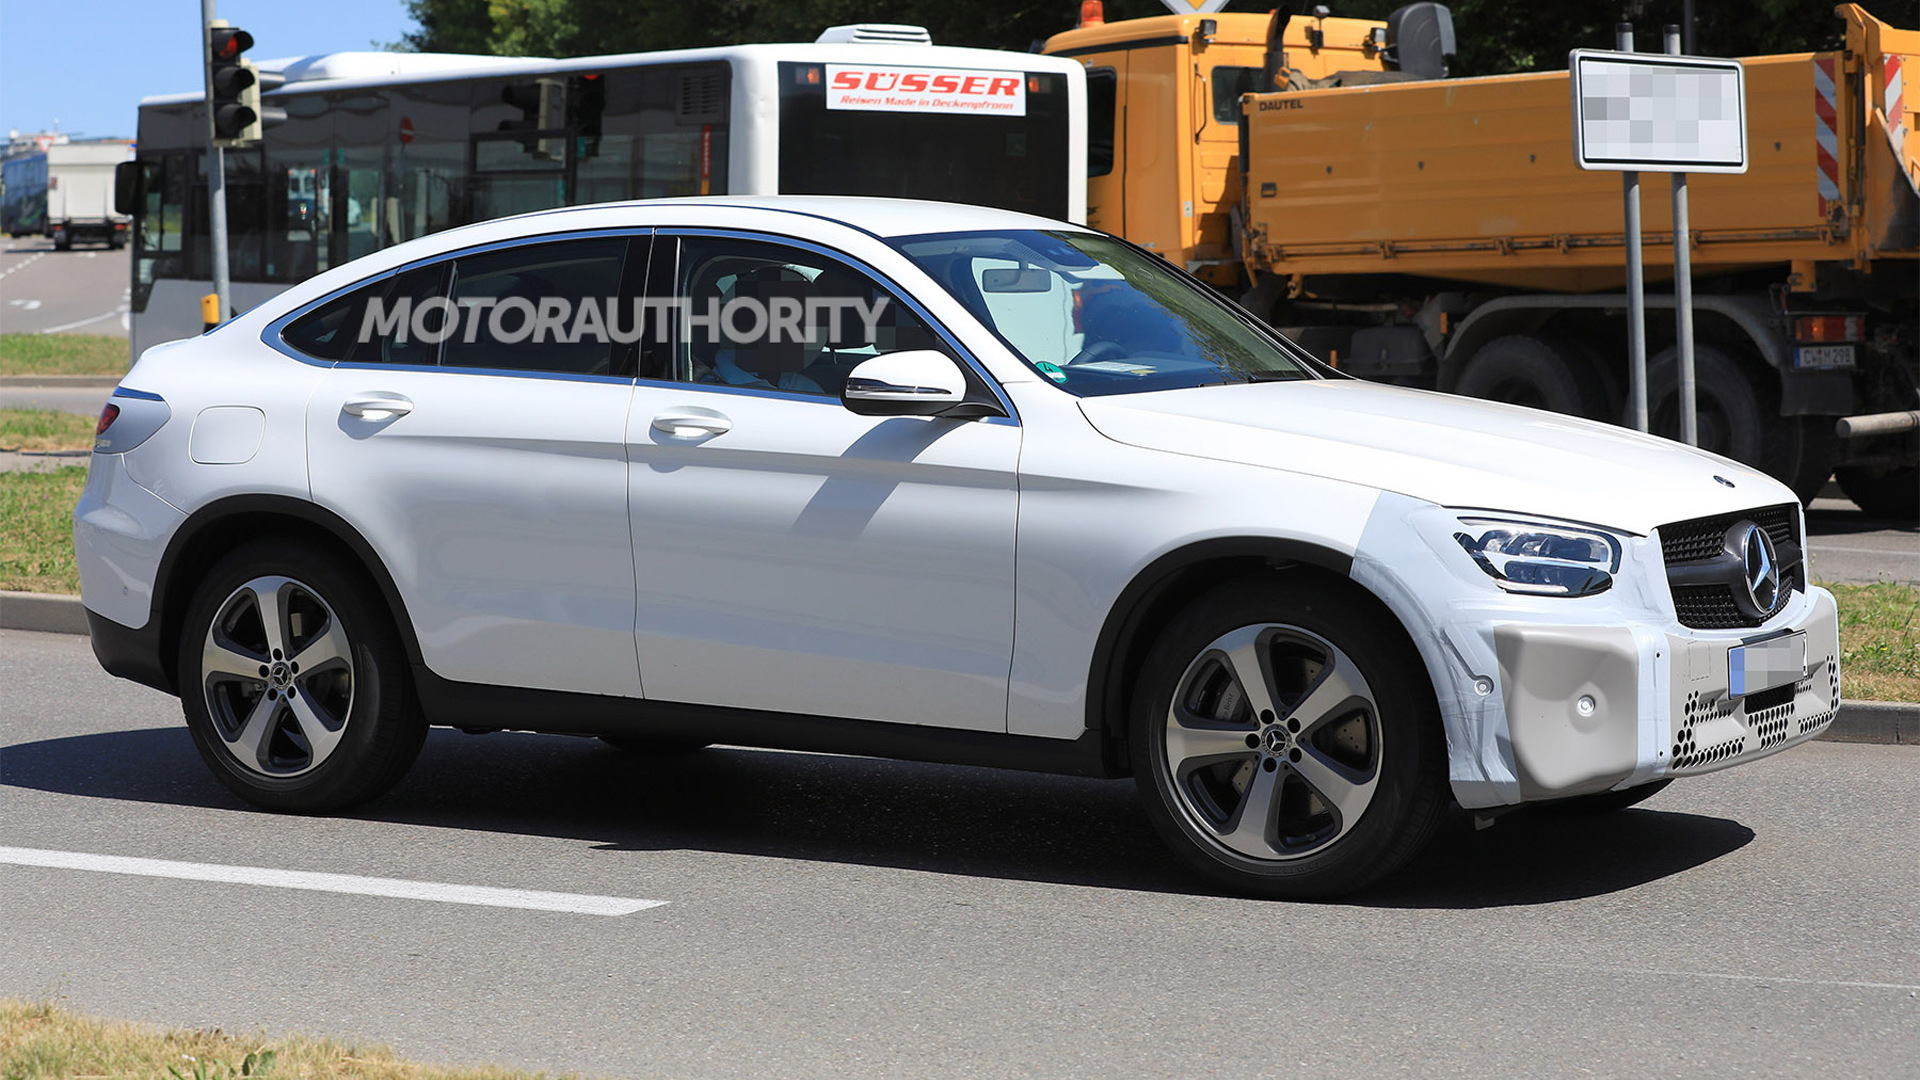 2020 Mercedes-Benz GLC Coupe facelift spy shots - Image via S. Baldauf/SB-Medien